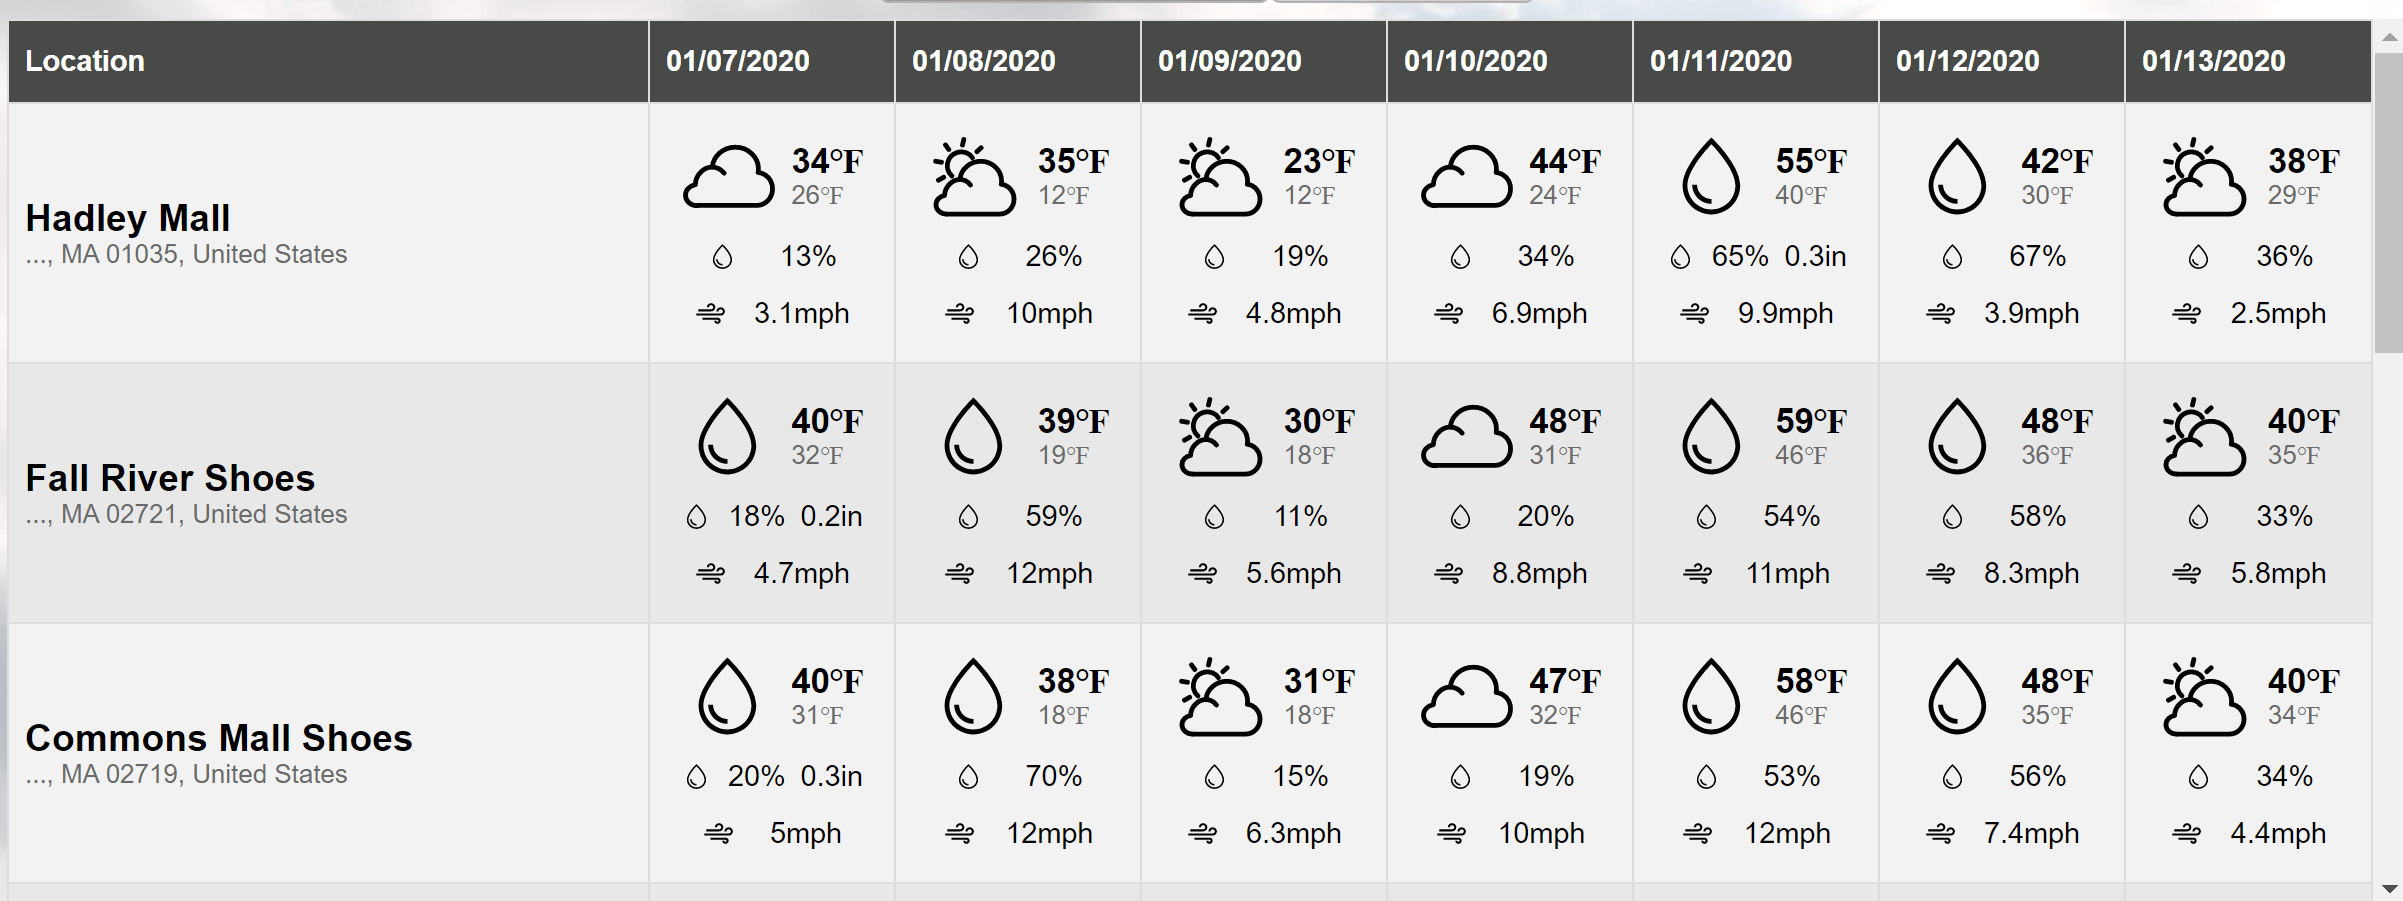 Weather forecast for the days ahead